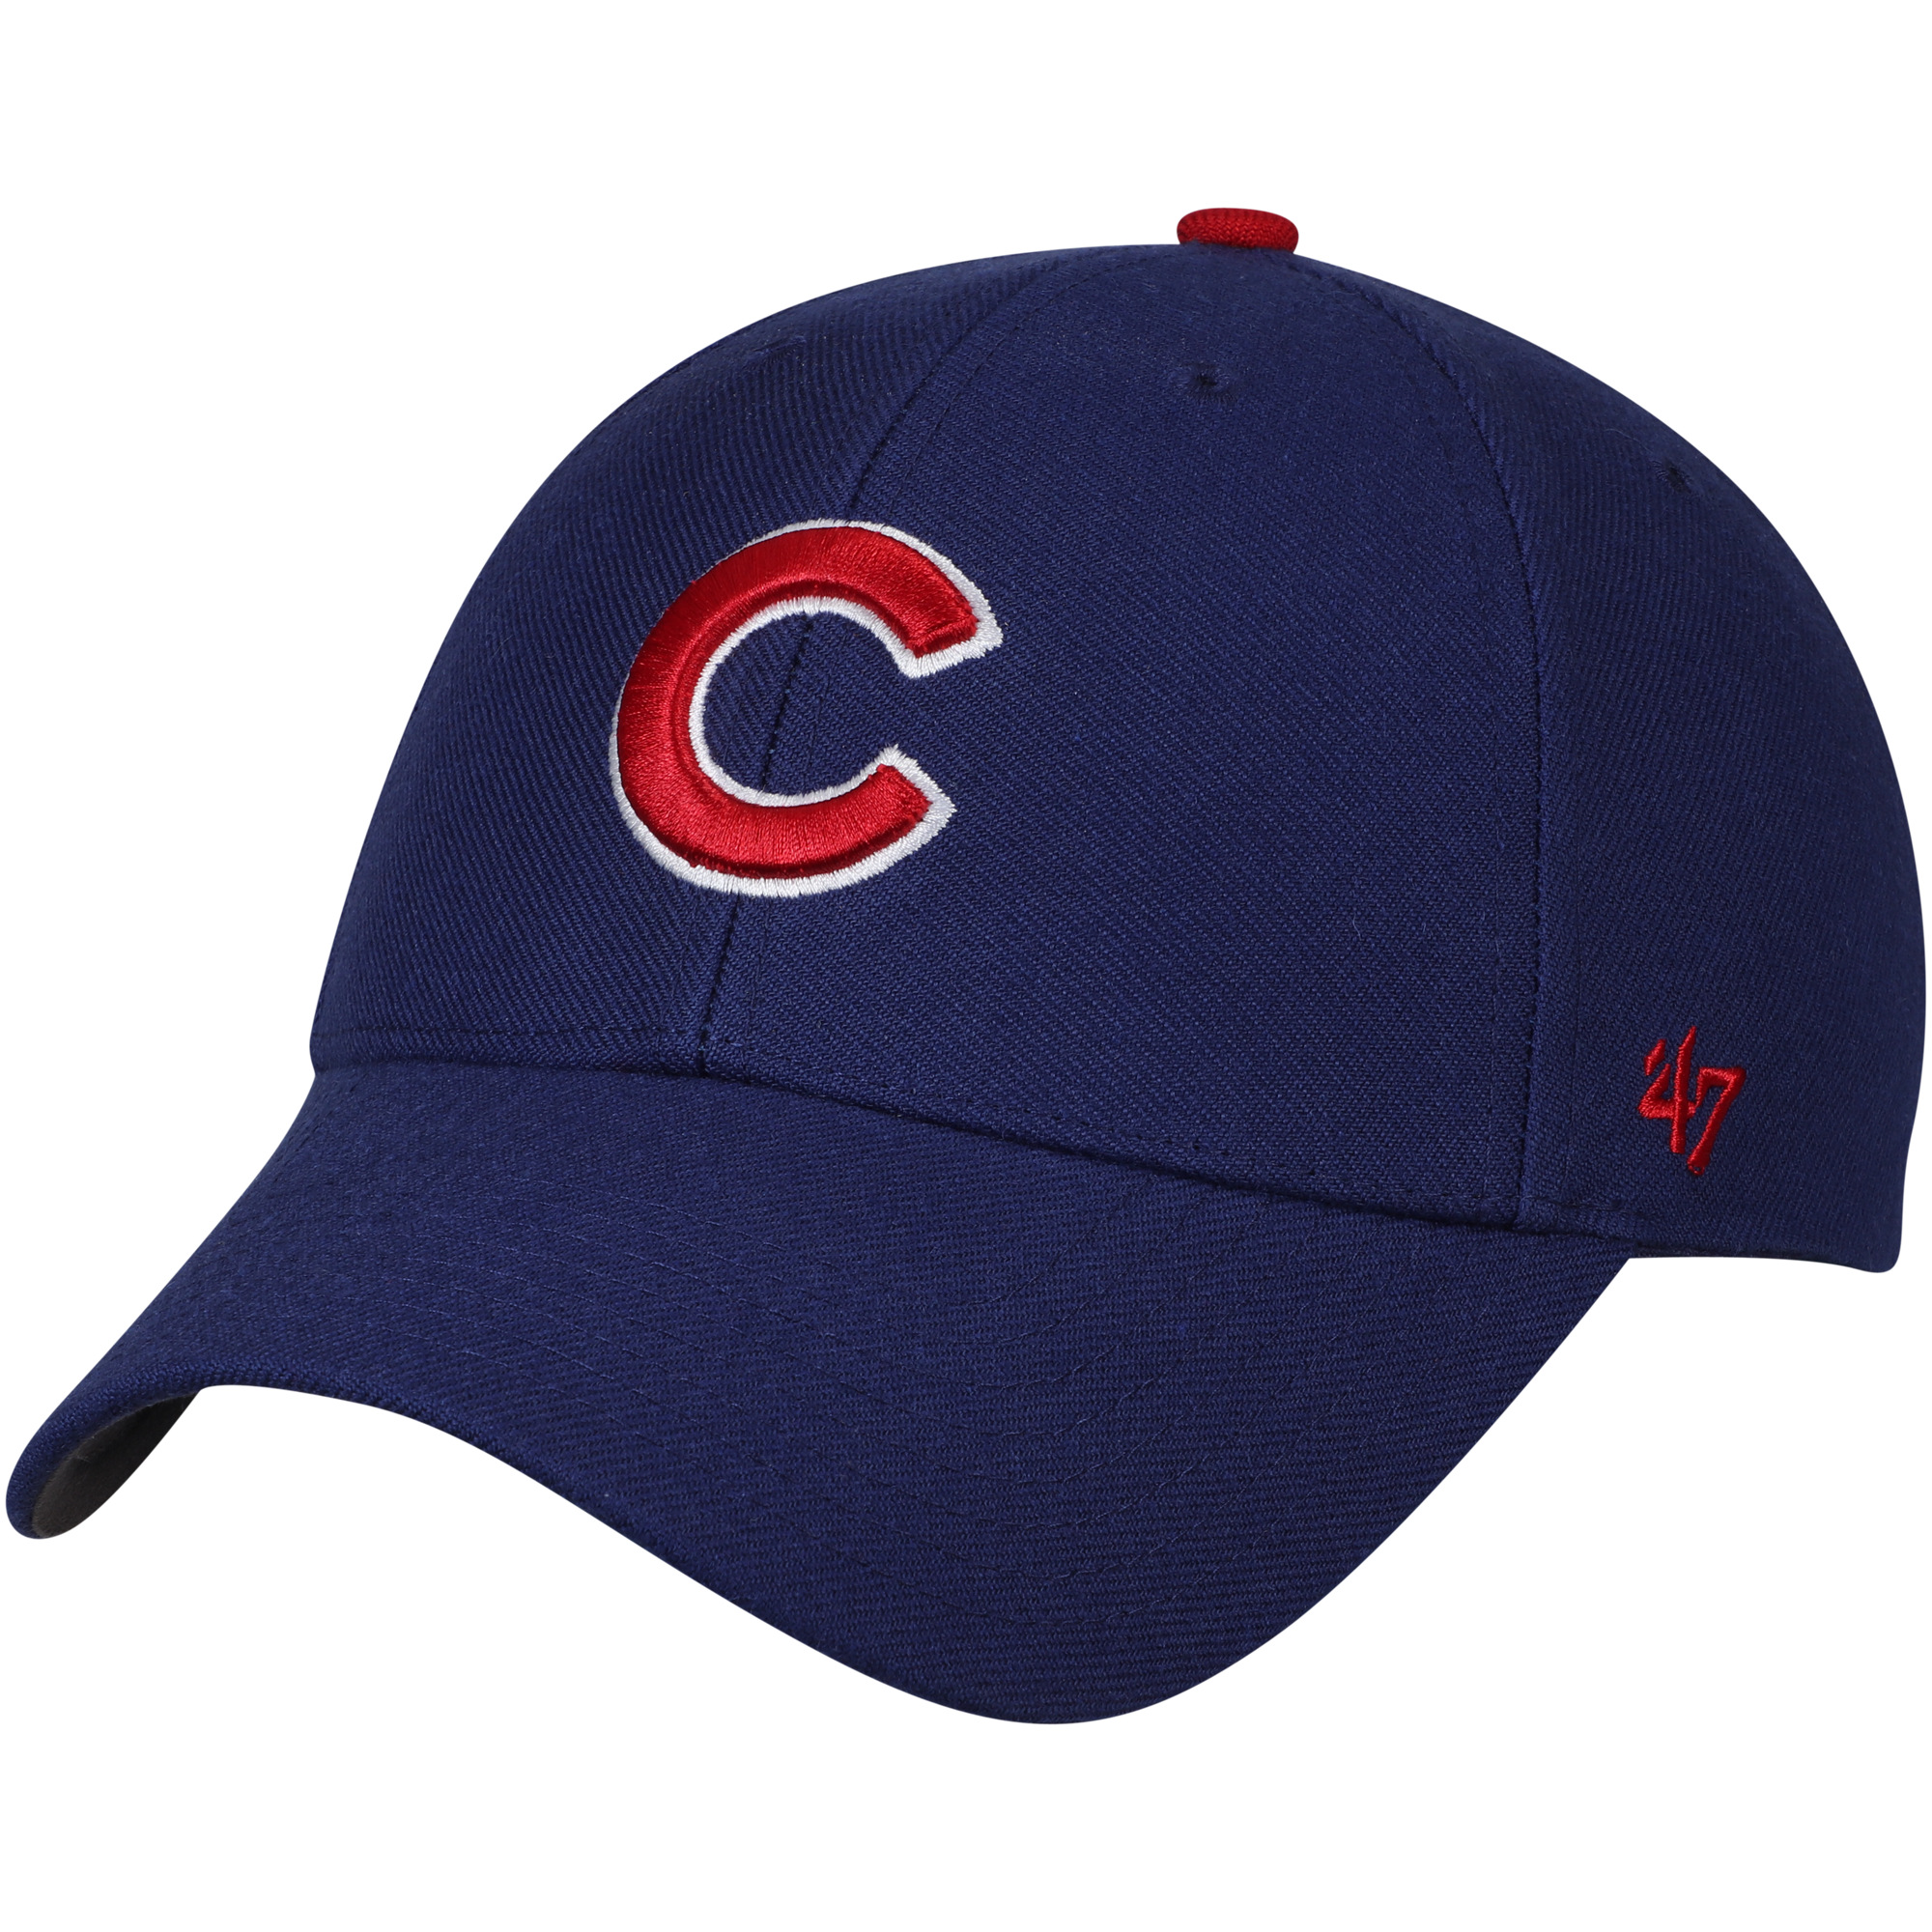 Chicago Cubs '47 MVP Little C Wool Adjustable Hat - Royal - OSFA